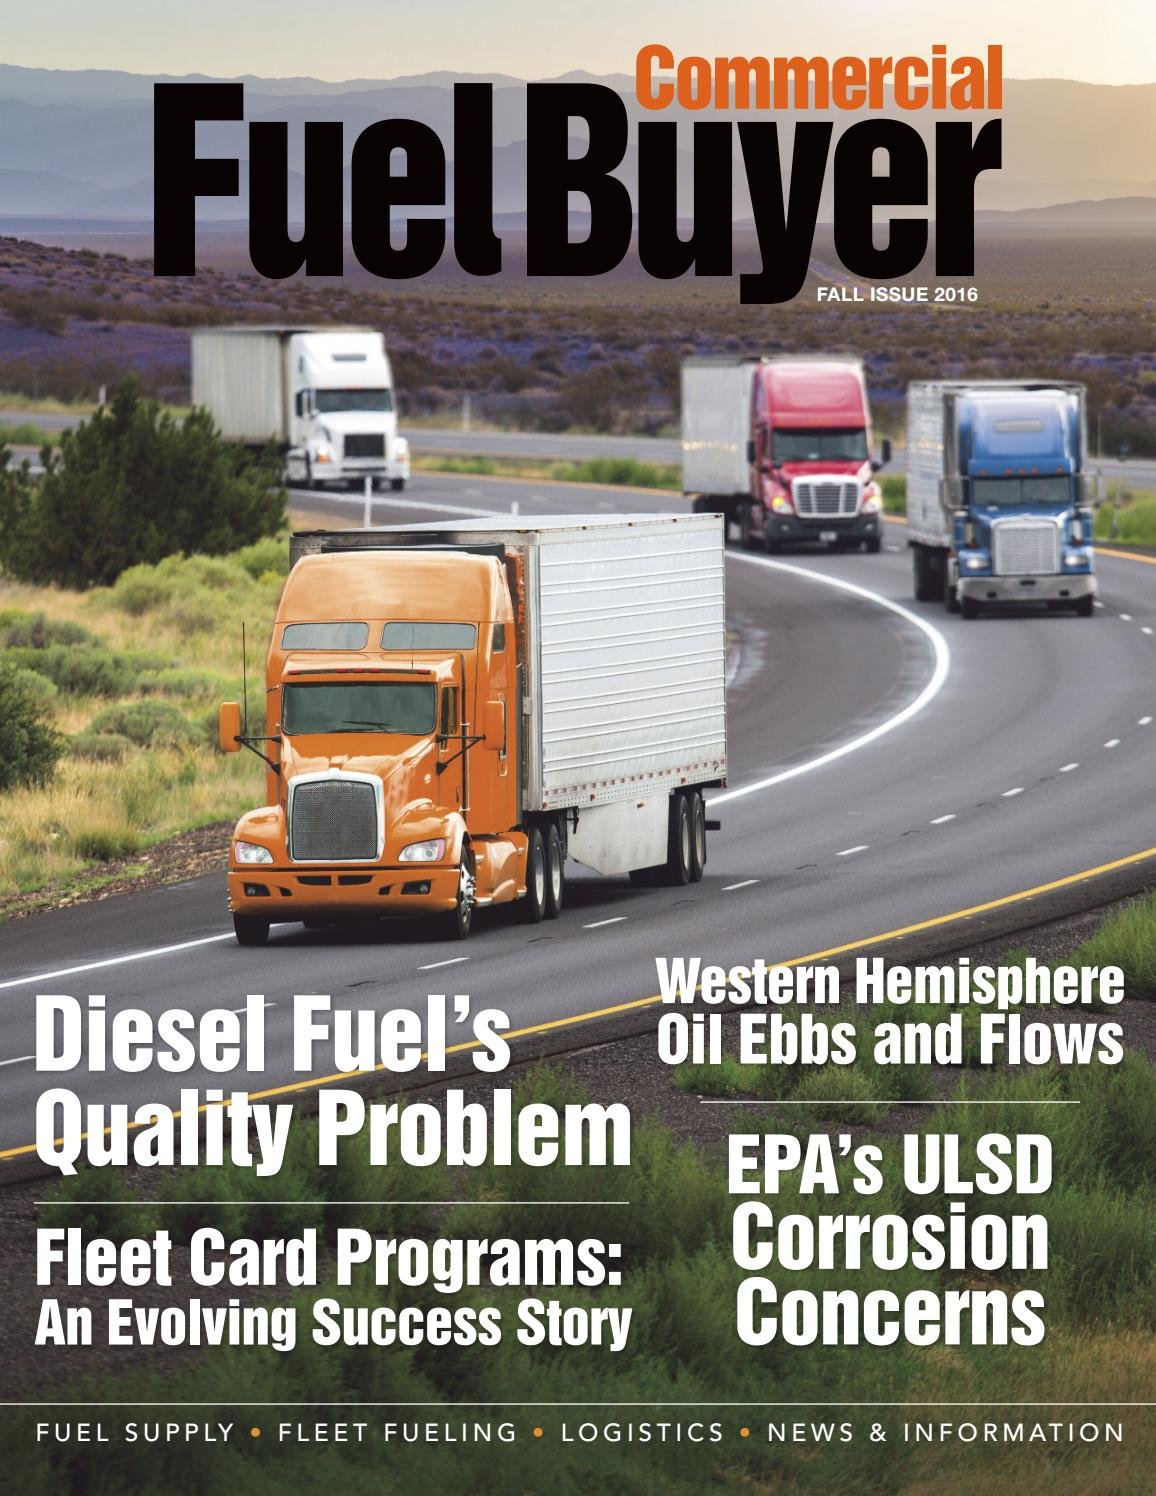 Commercial Fuel Buyer Fall 2016 by Fuels Market News - issuu